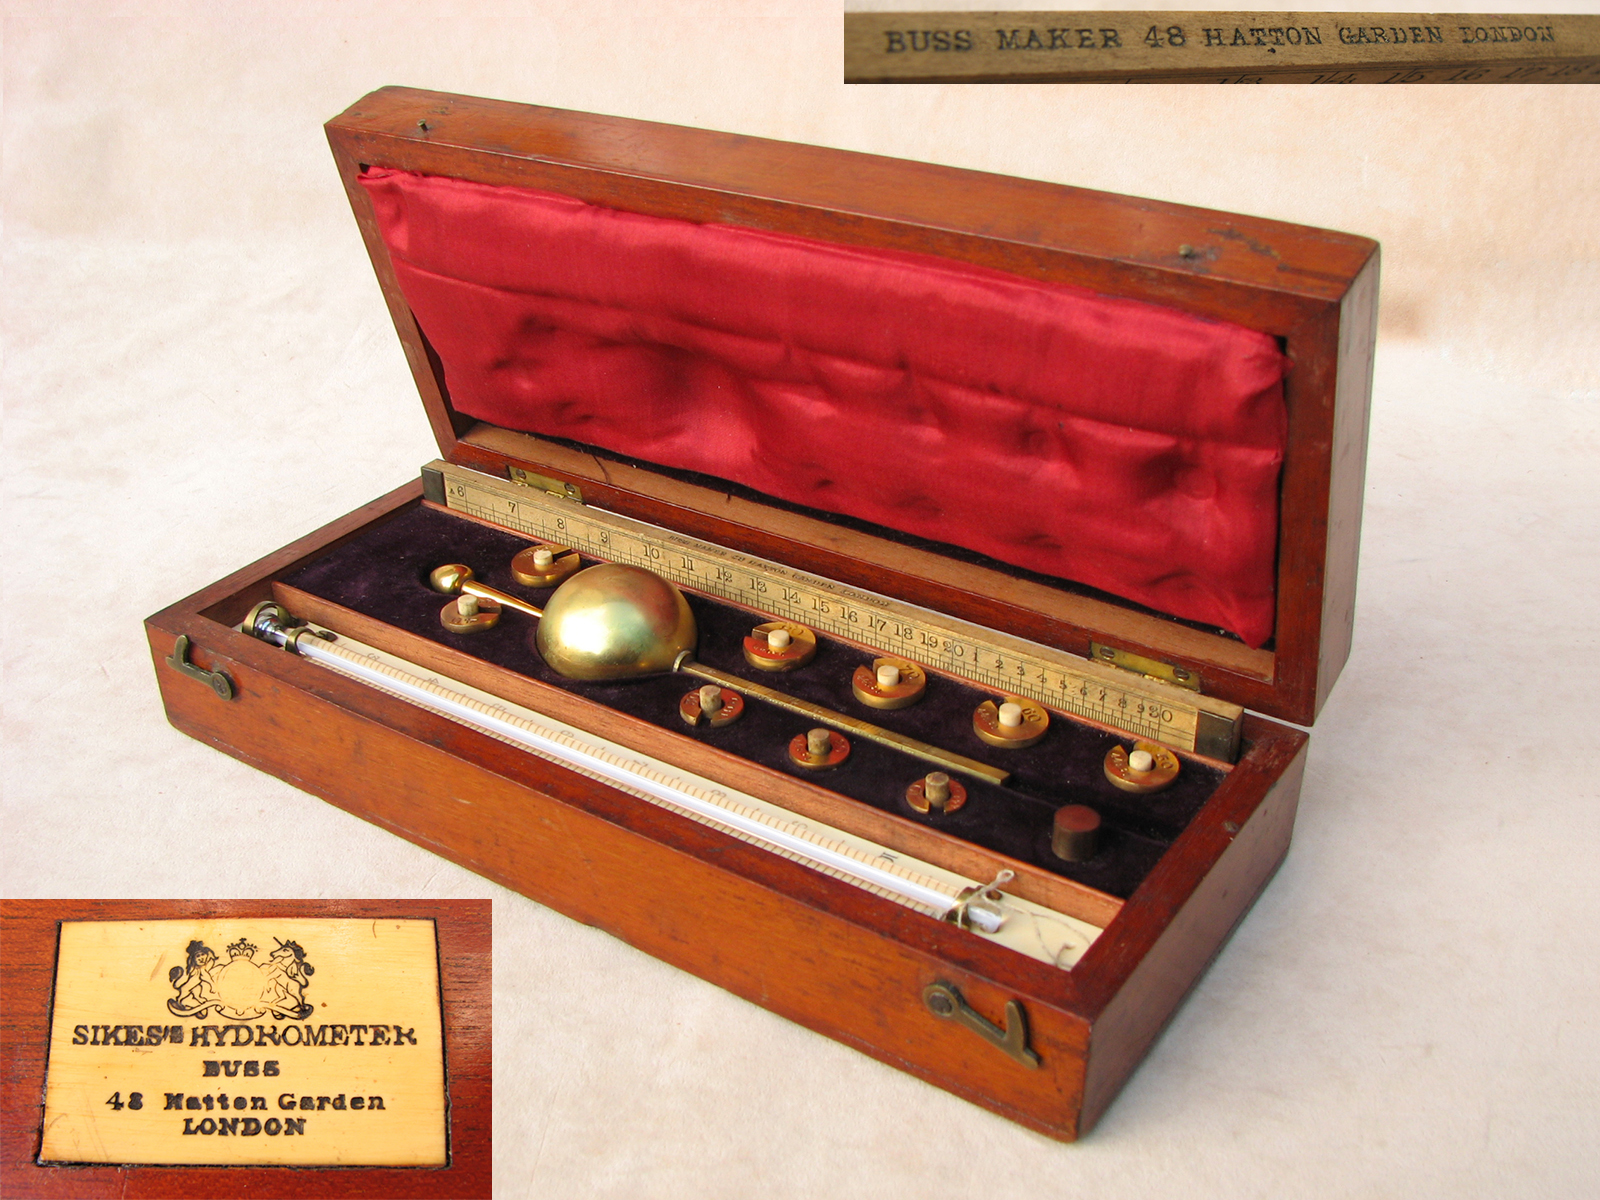 19th century Sikes hydrometer set by T O Buss with book of spirit tables